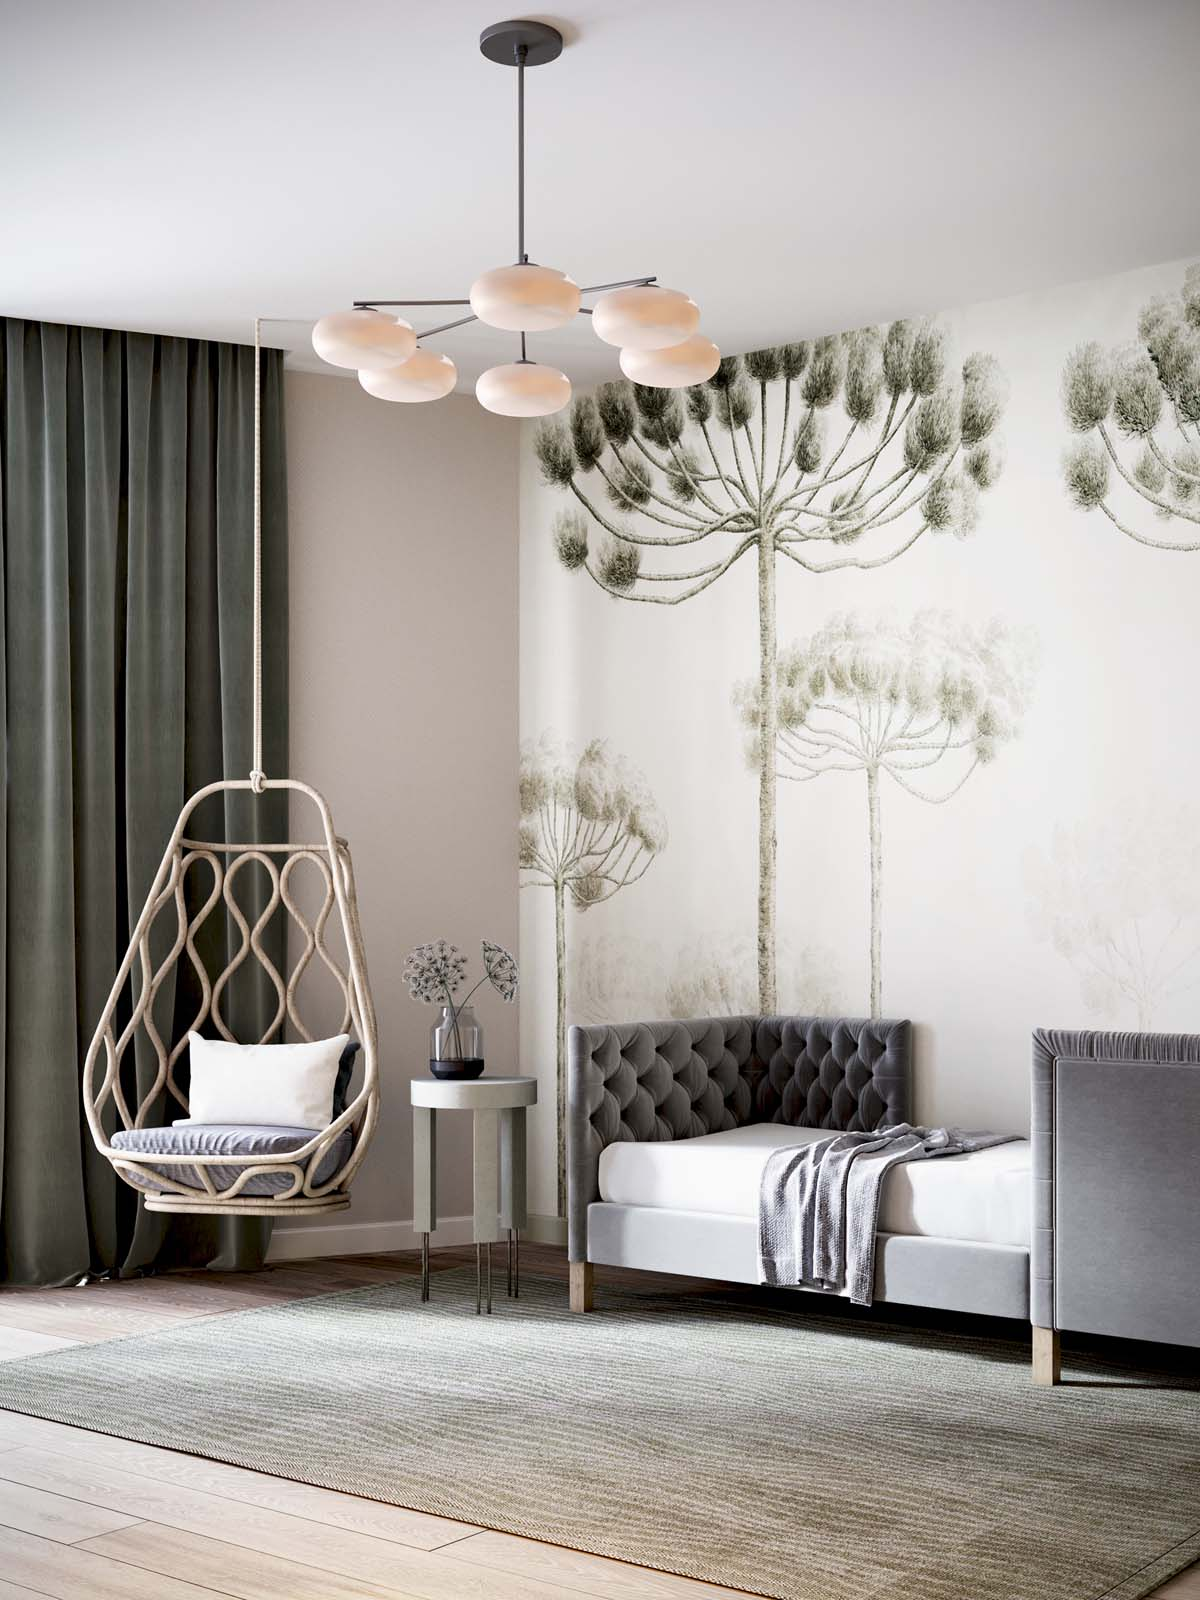 A Luxurious Home Interior with Pretty, Muted Pastel Colors images 26